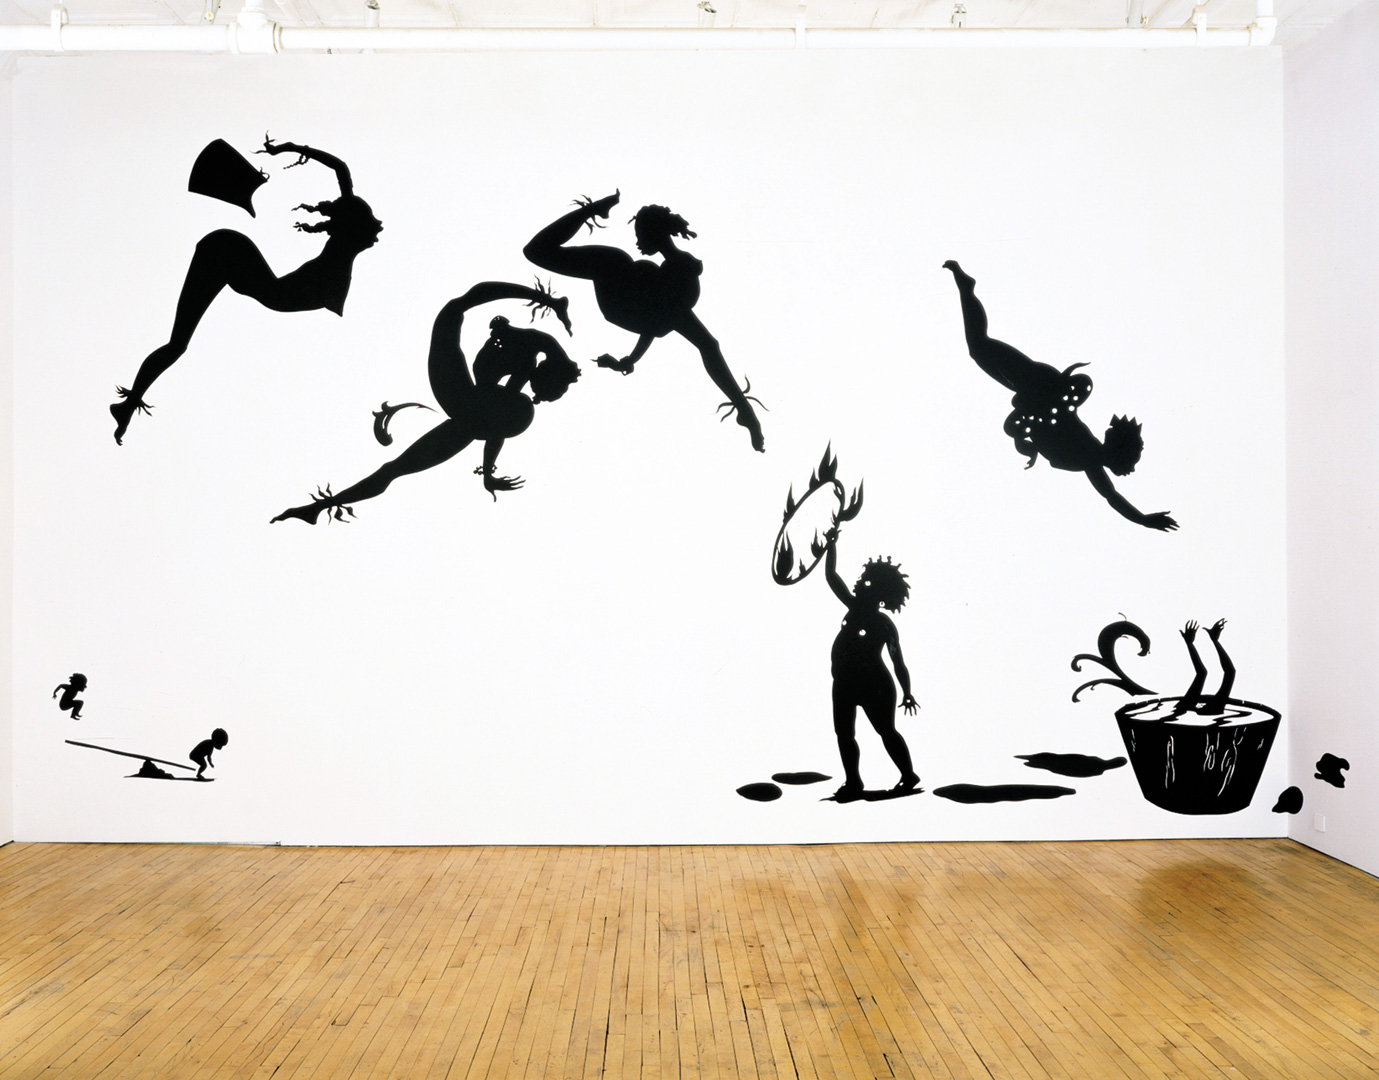 Kara Walker - Danse de la Nubienne Nouveaux, 1998, cut paper on wall